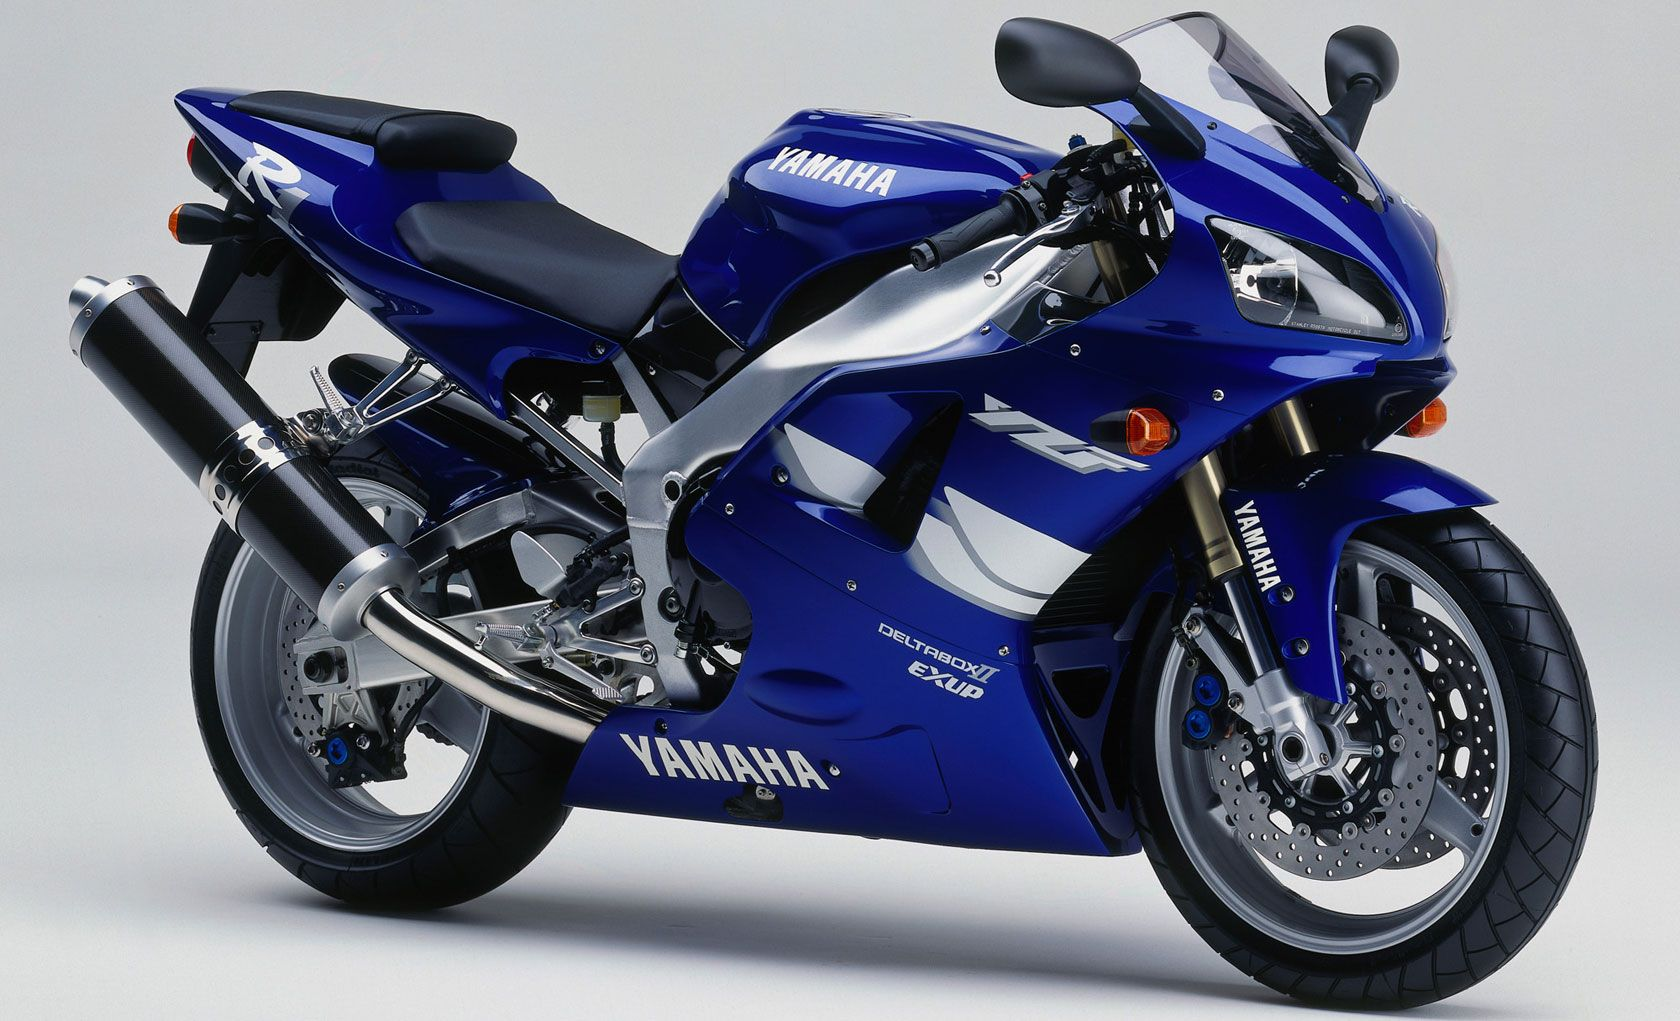 1999 Yamaha R1/YZF-R1 | putting excitement between your legs